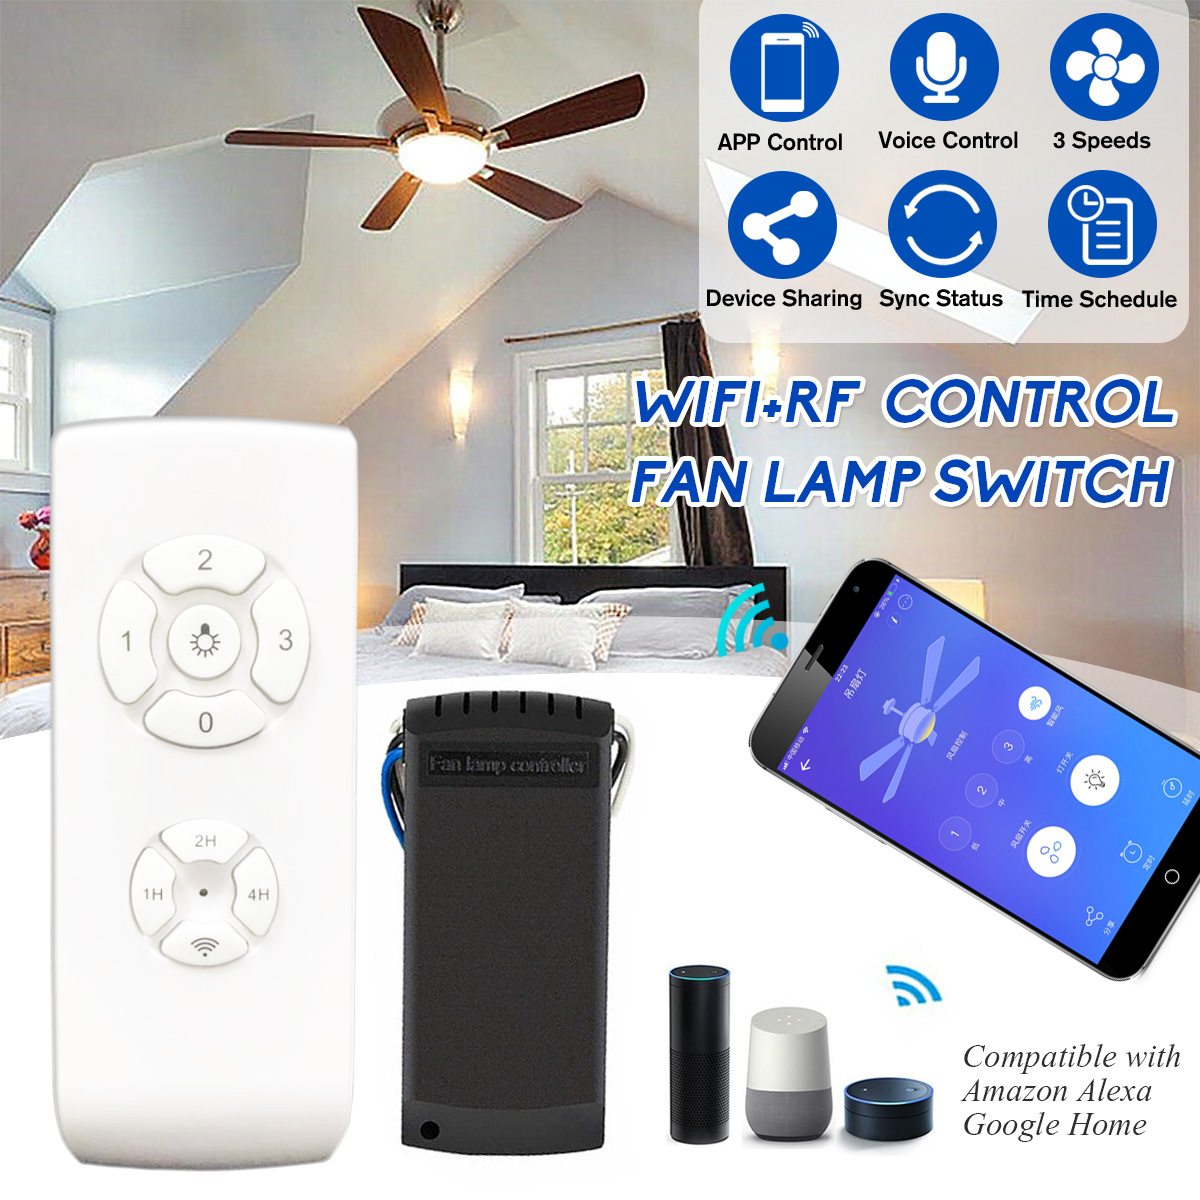 Tool Wifi Rf App Wireless Remote Control Ceiling Fan Ceiling Light Lamp Switch Timing Control Kit Buy Online At Best Prices In Myanmar Shop Com Mm